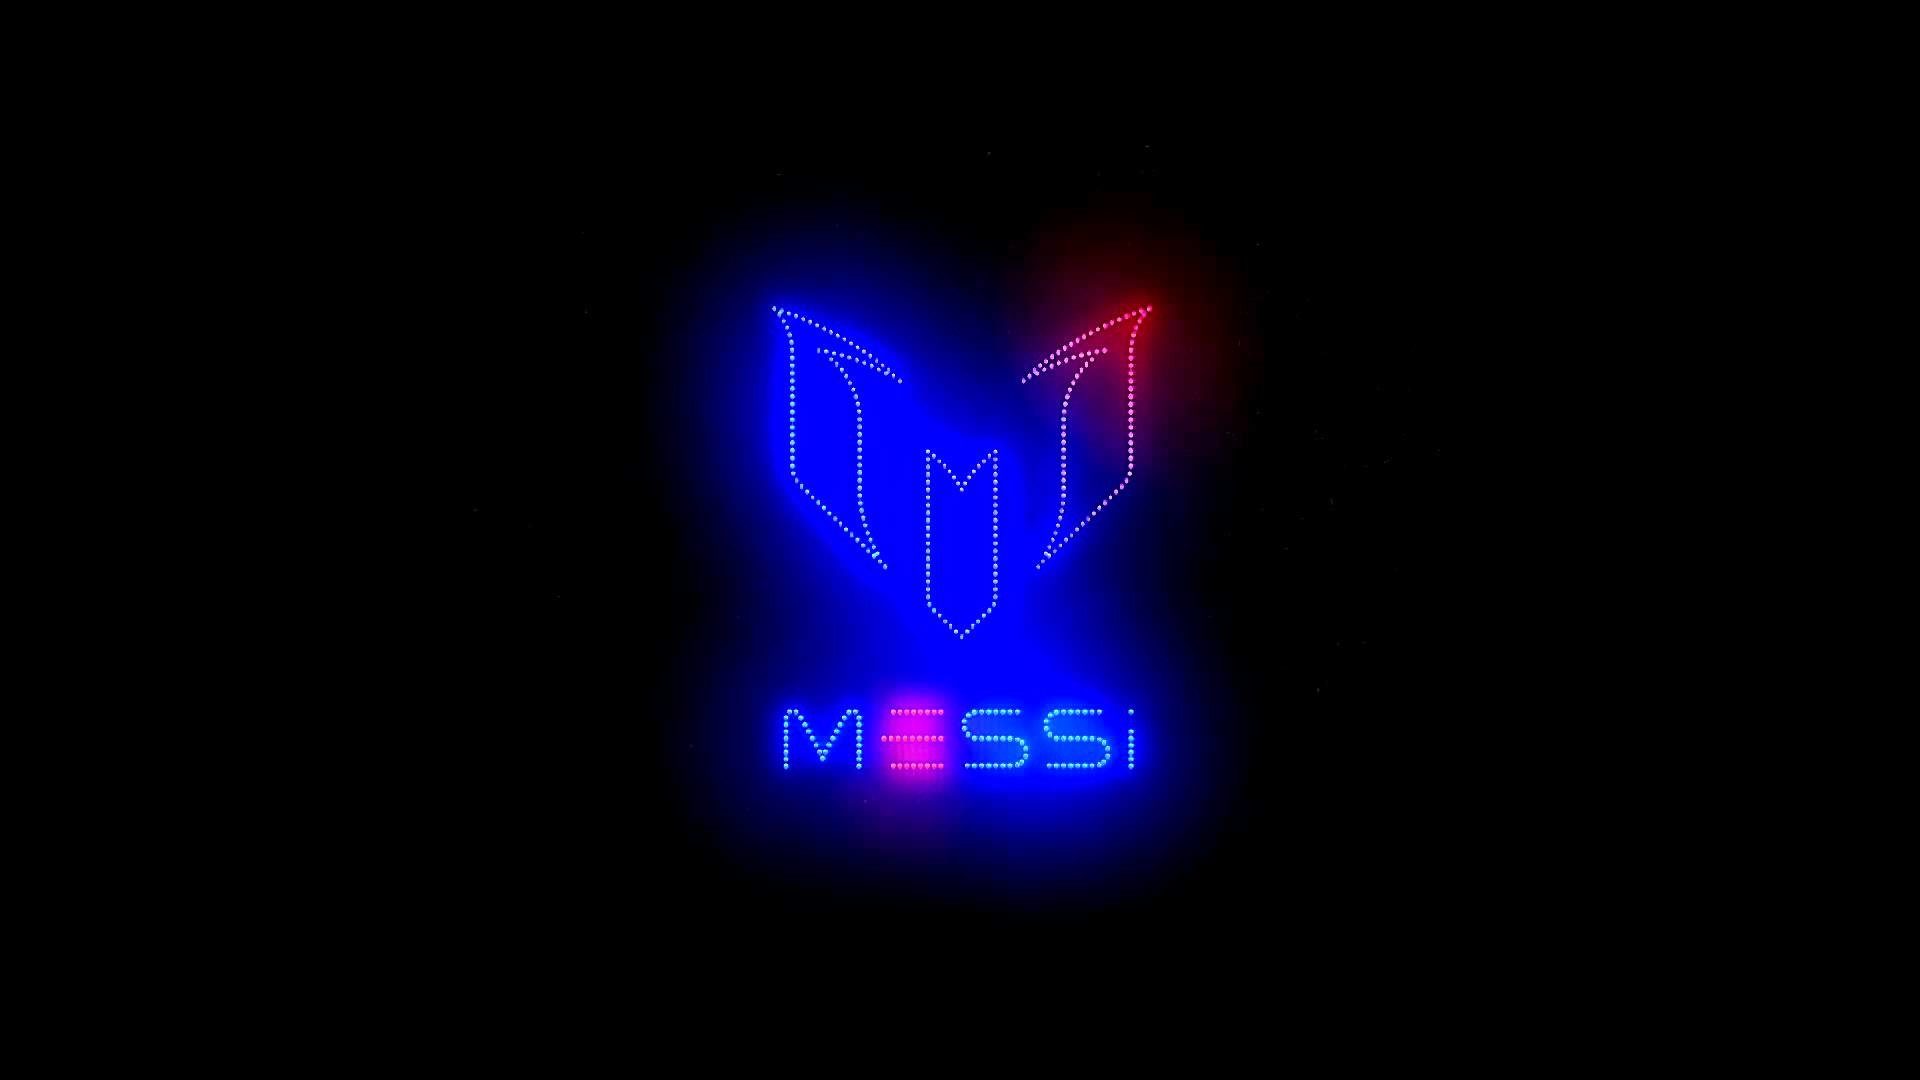 Messi logo wallpapers 75 images 1920x1080 lionel messi wallpaper silakan kemari source adidas football leo messi at the new voltagebd Choice Image